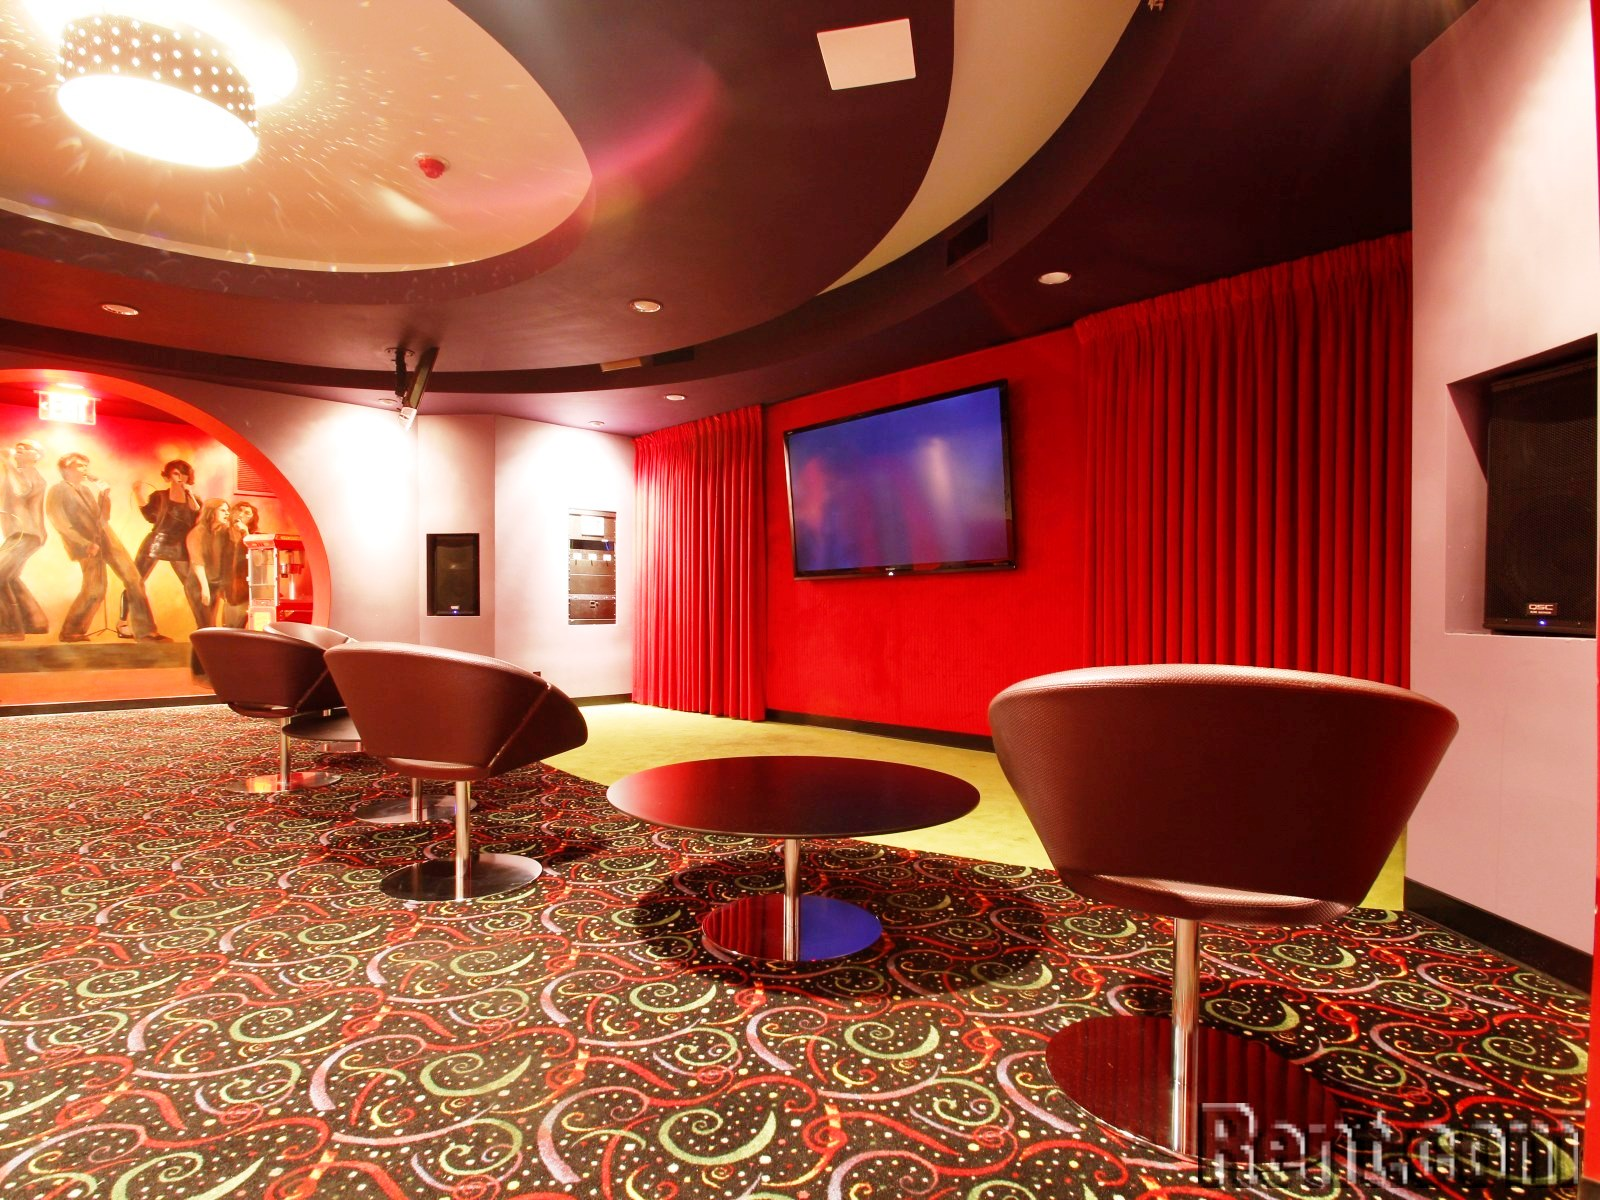 The Top 10 Most Baller Amenities at Luxury Apartments - Movie Theater